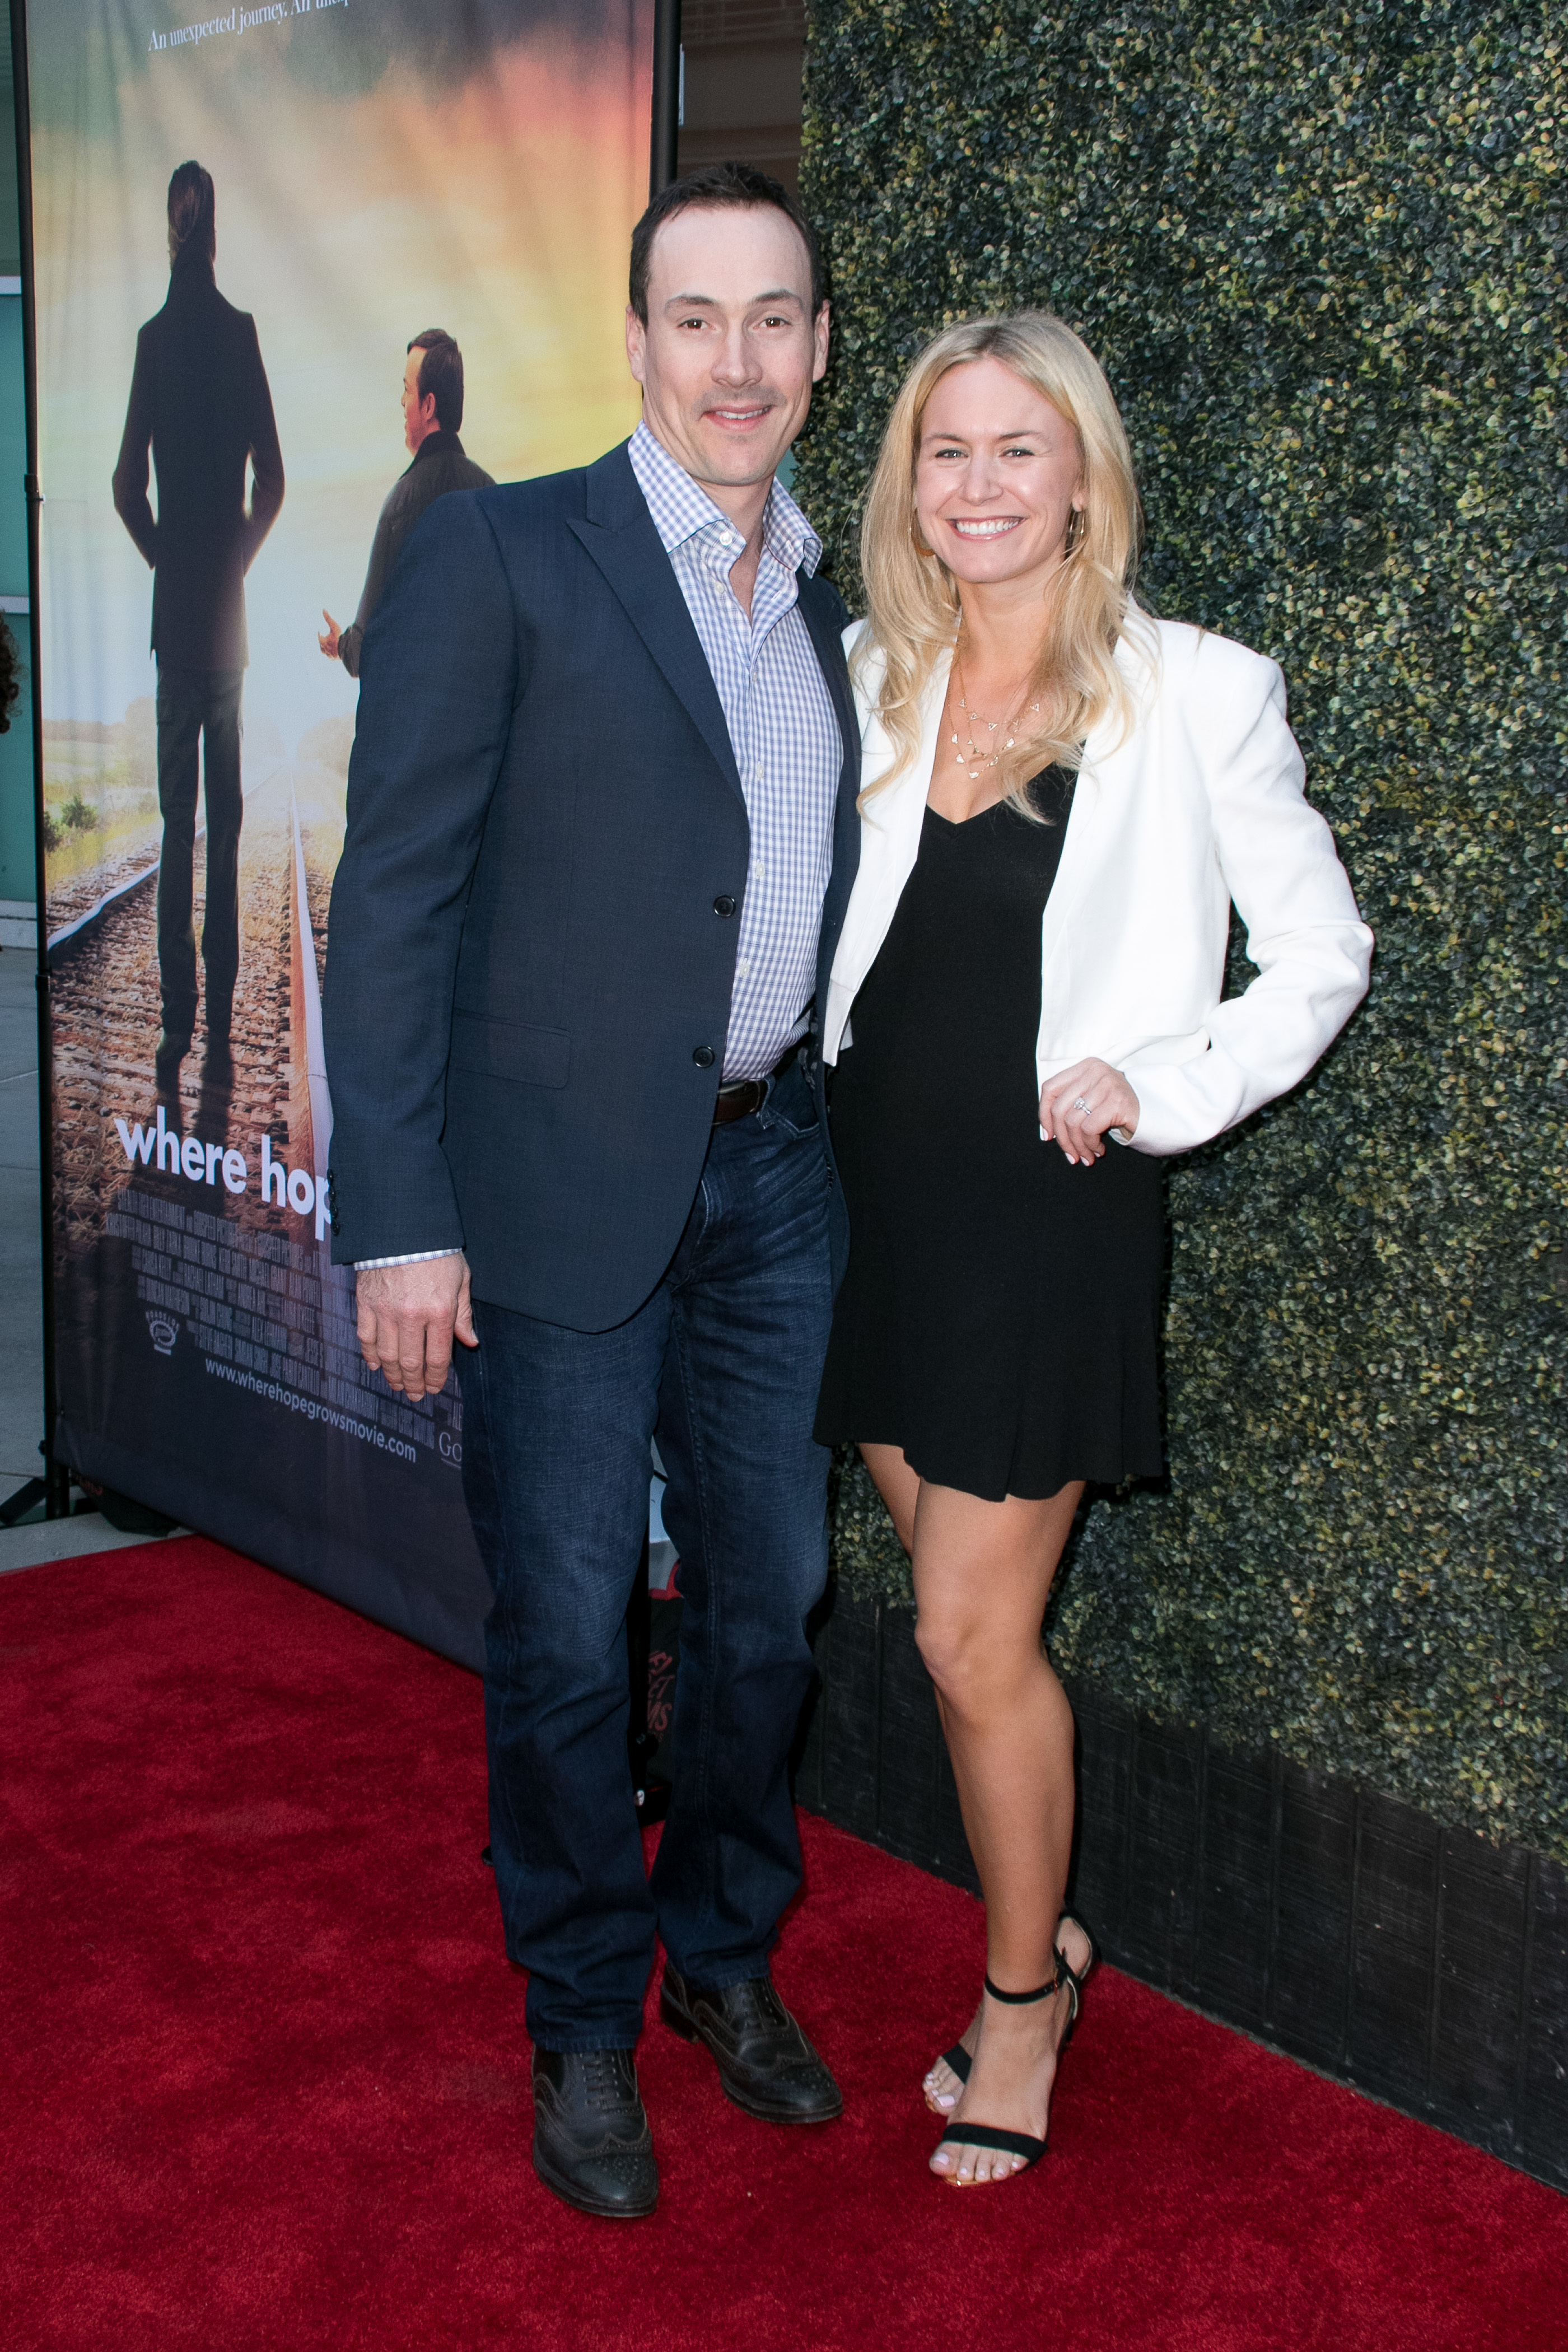 Chris Klein is going to be a dad